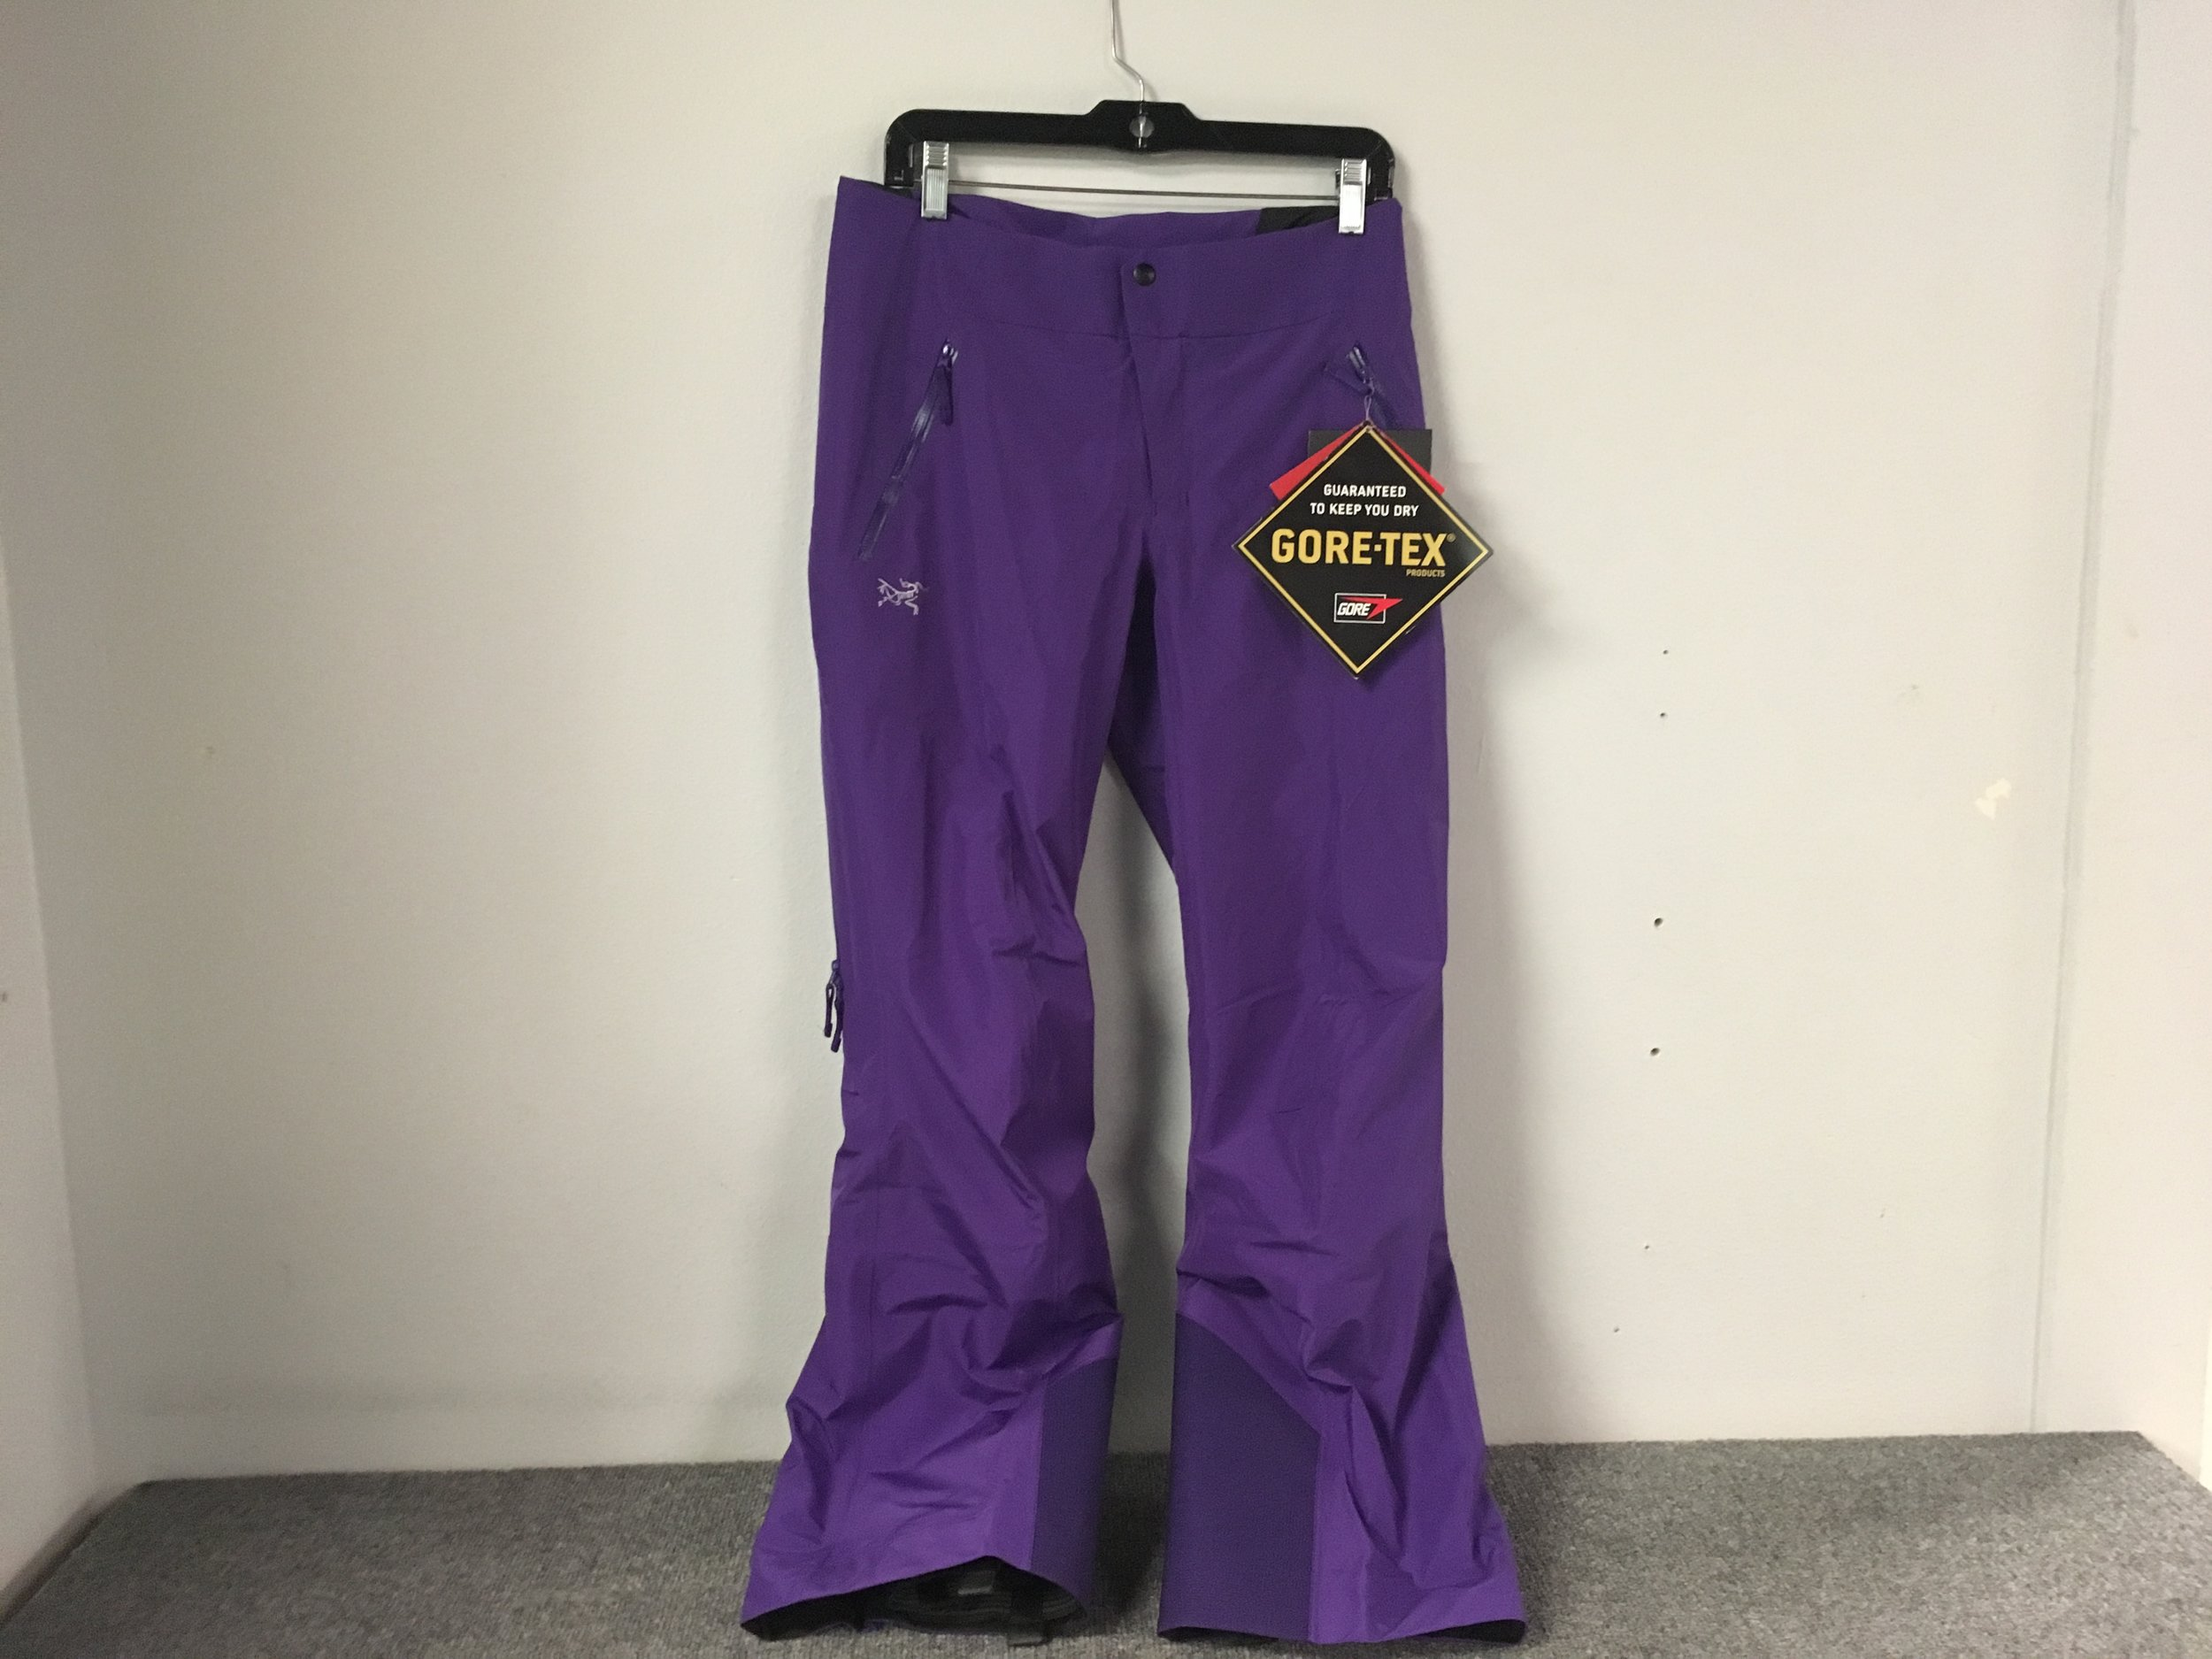 By combining Coreloft insulation and the durability/waterproofing of Gore-Tex fabric, Arcteryx has hit the nail on the head once again with their Kakeela pants! The retail price is listed at $525 but we got you covered at $288. The size is a women's 4.